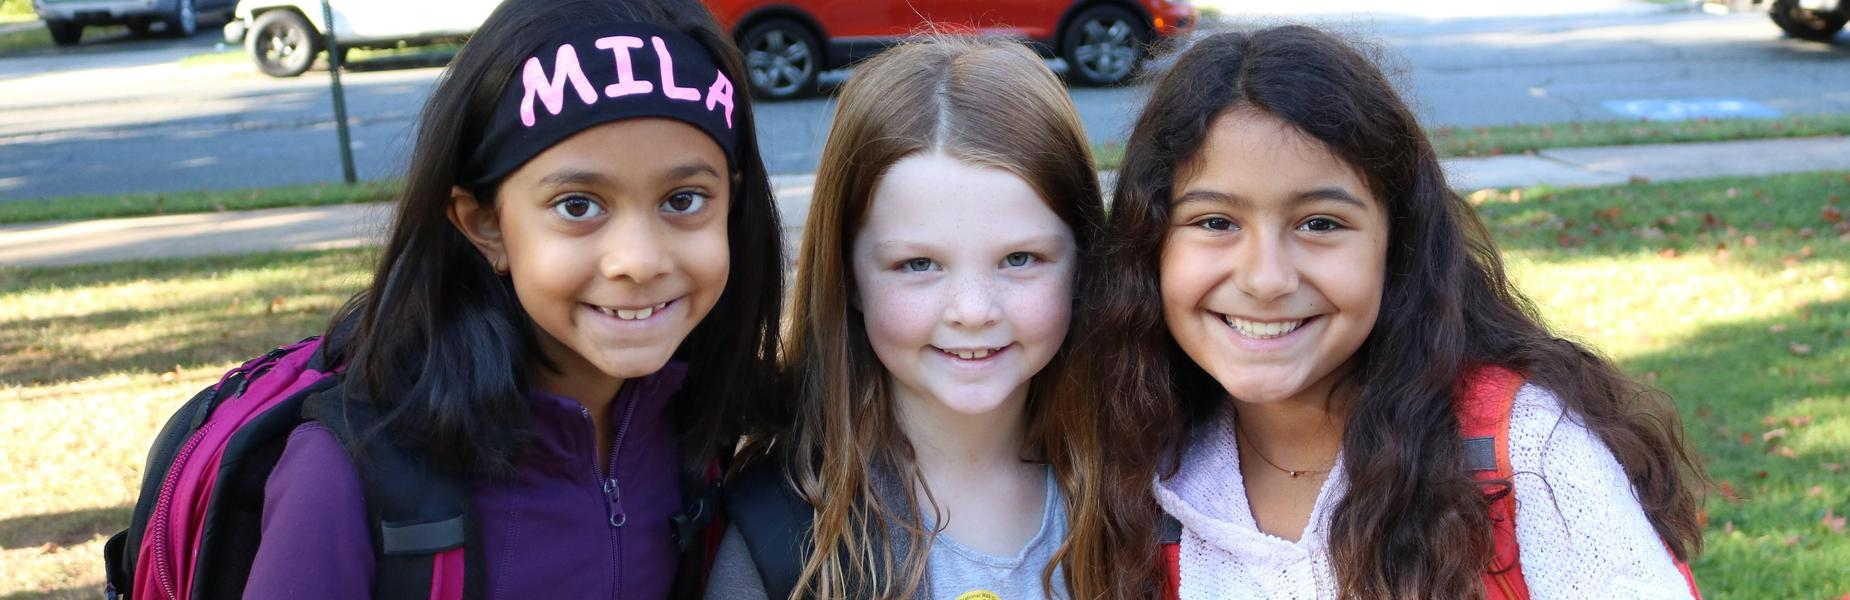 Photo of three Franklin students on Walk to School Day.